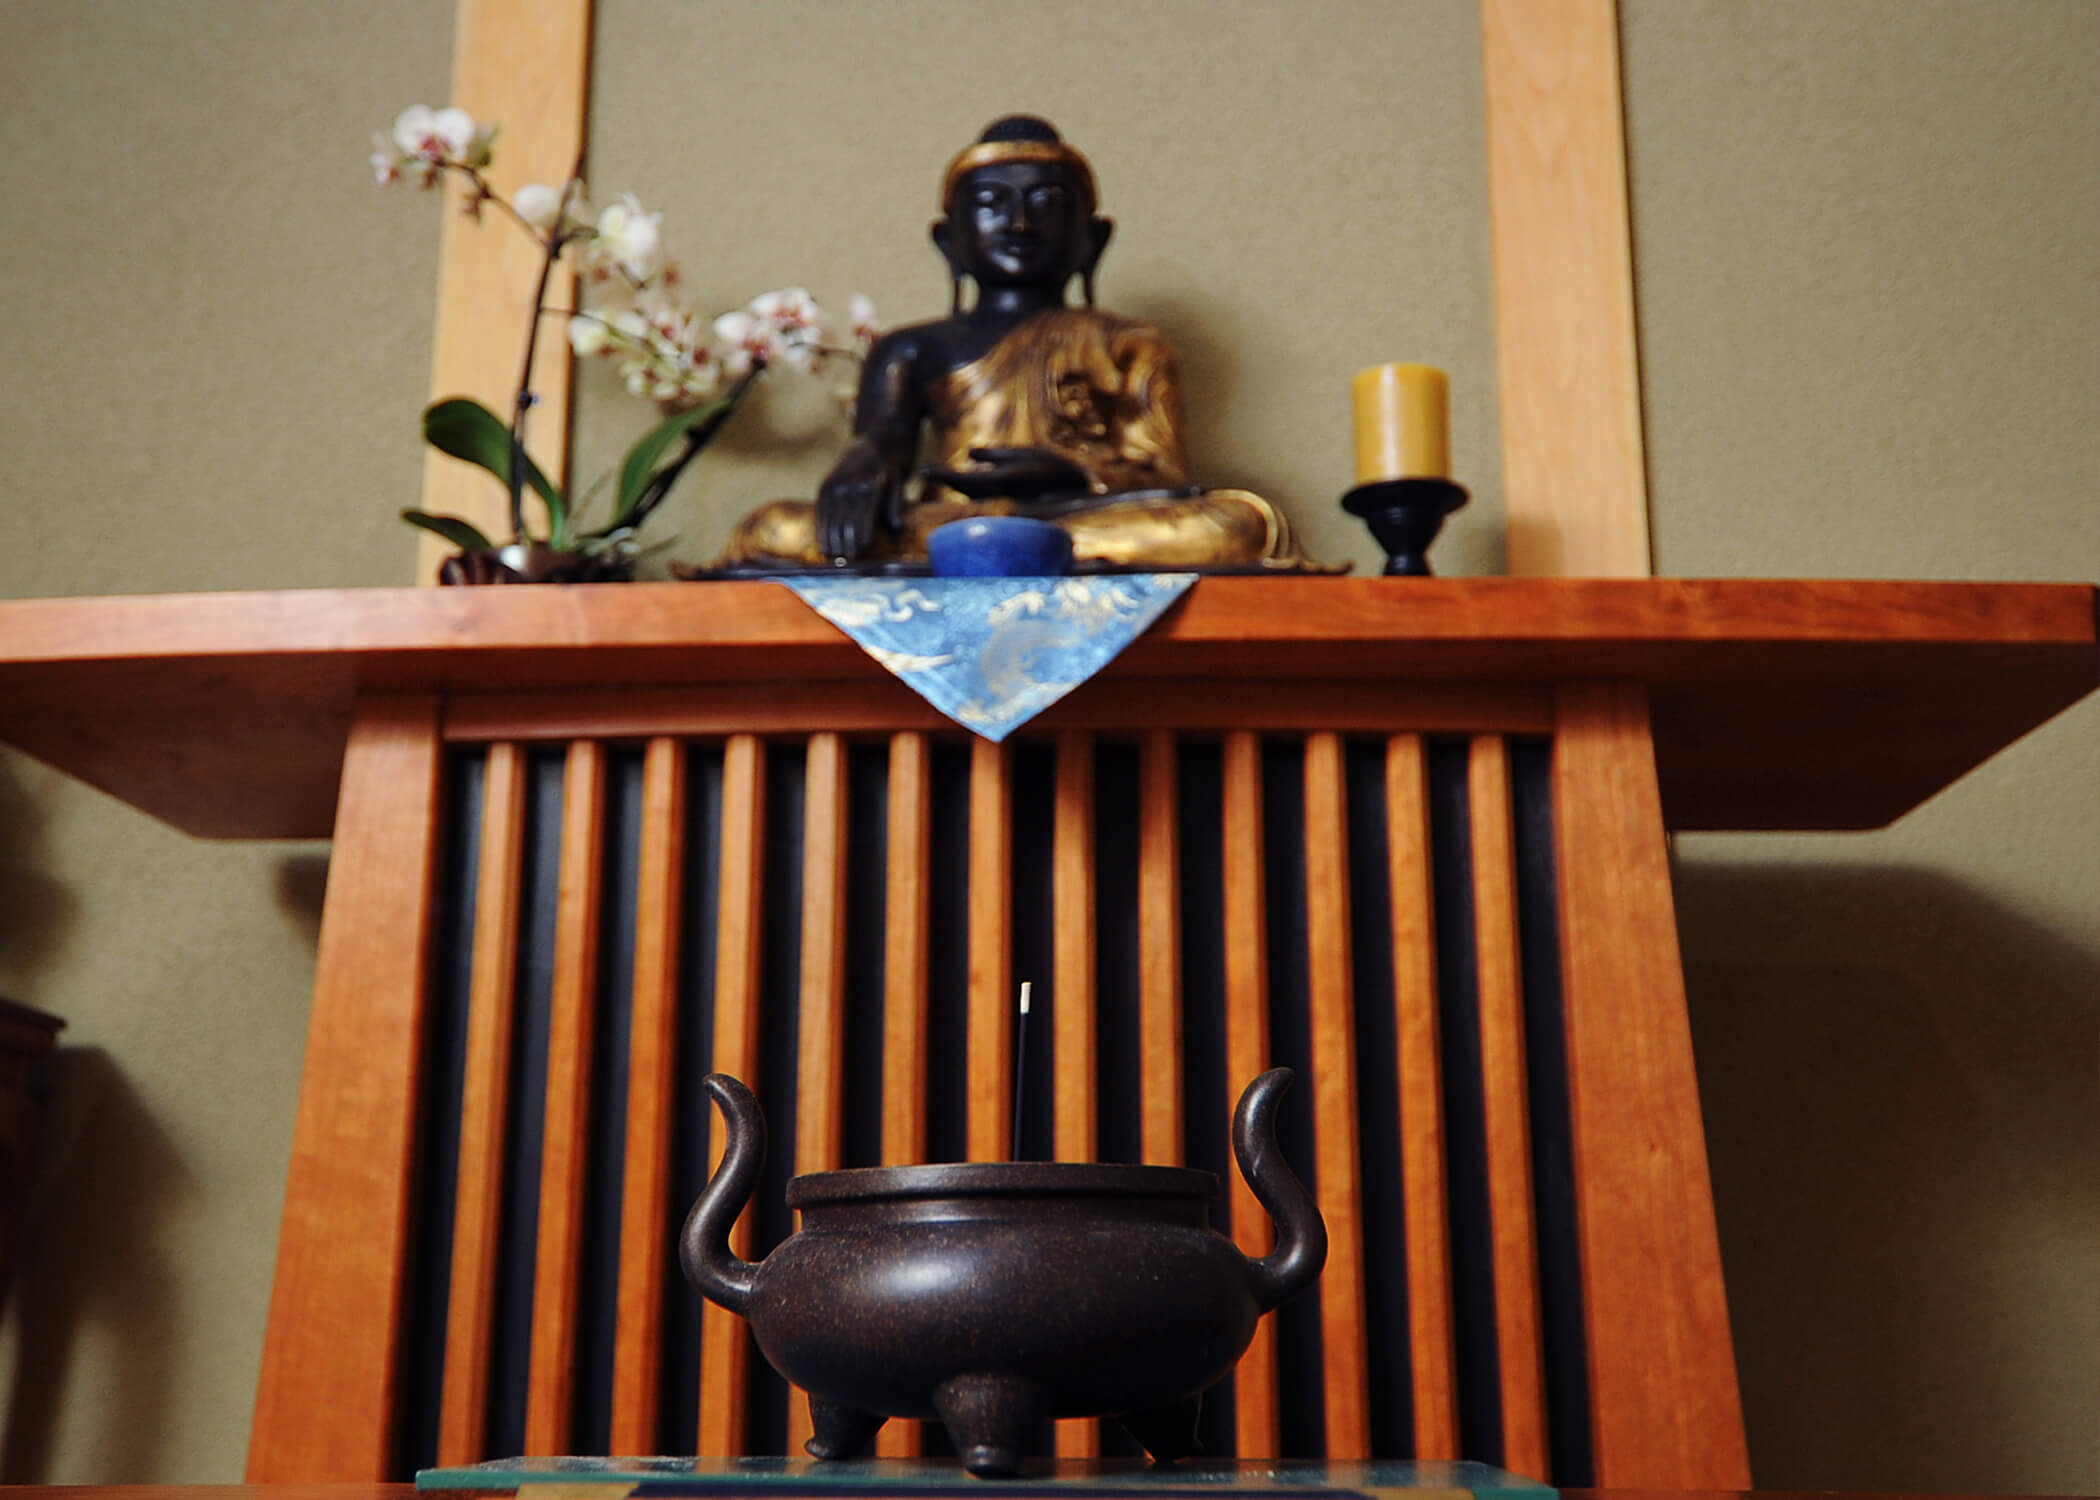 Image of a Buddhist meditation room at the U.S. Air Force Academy..